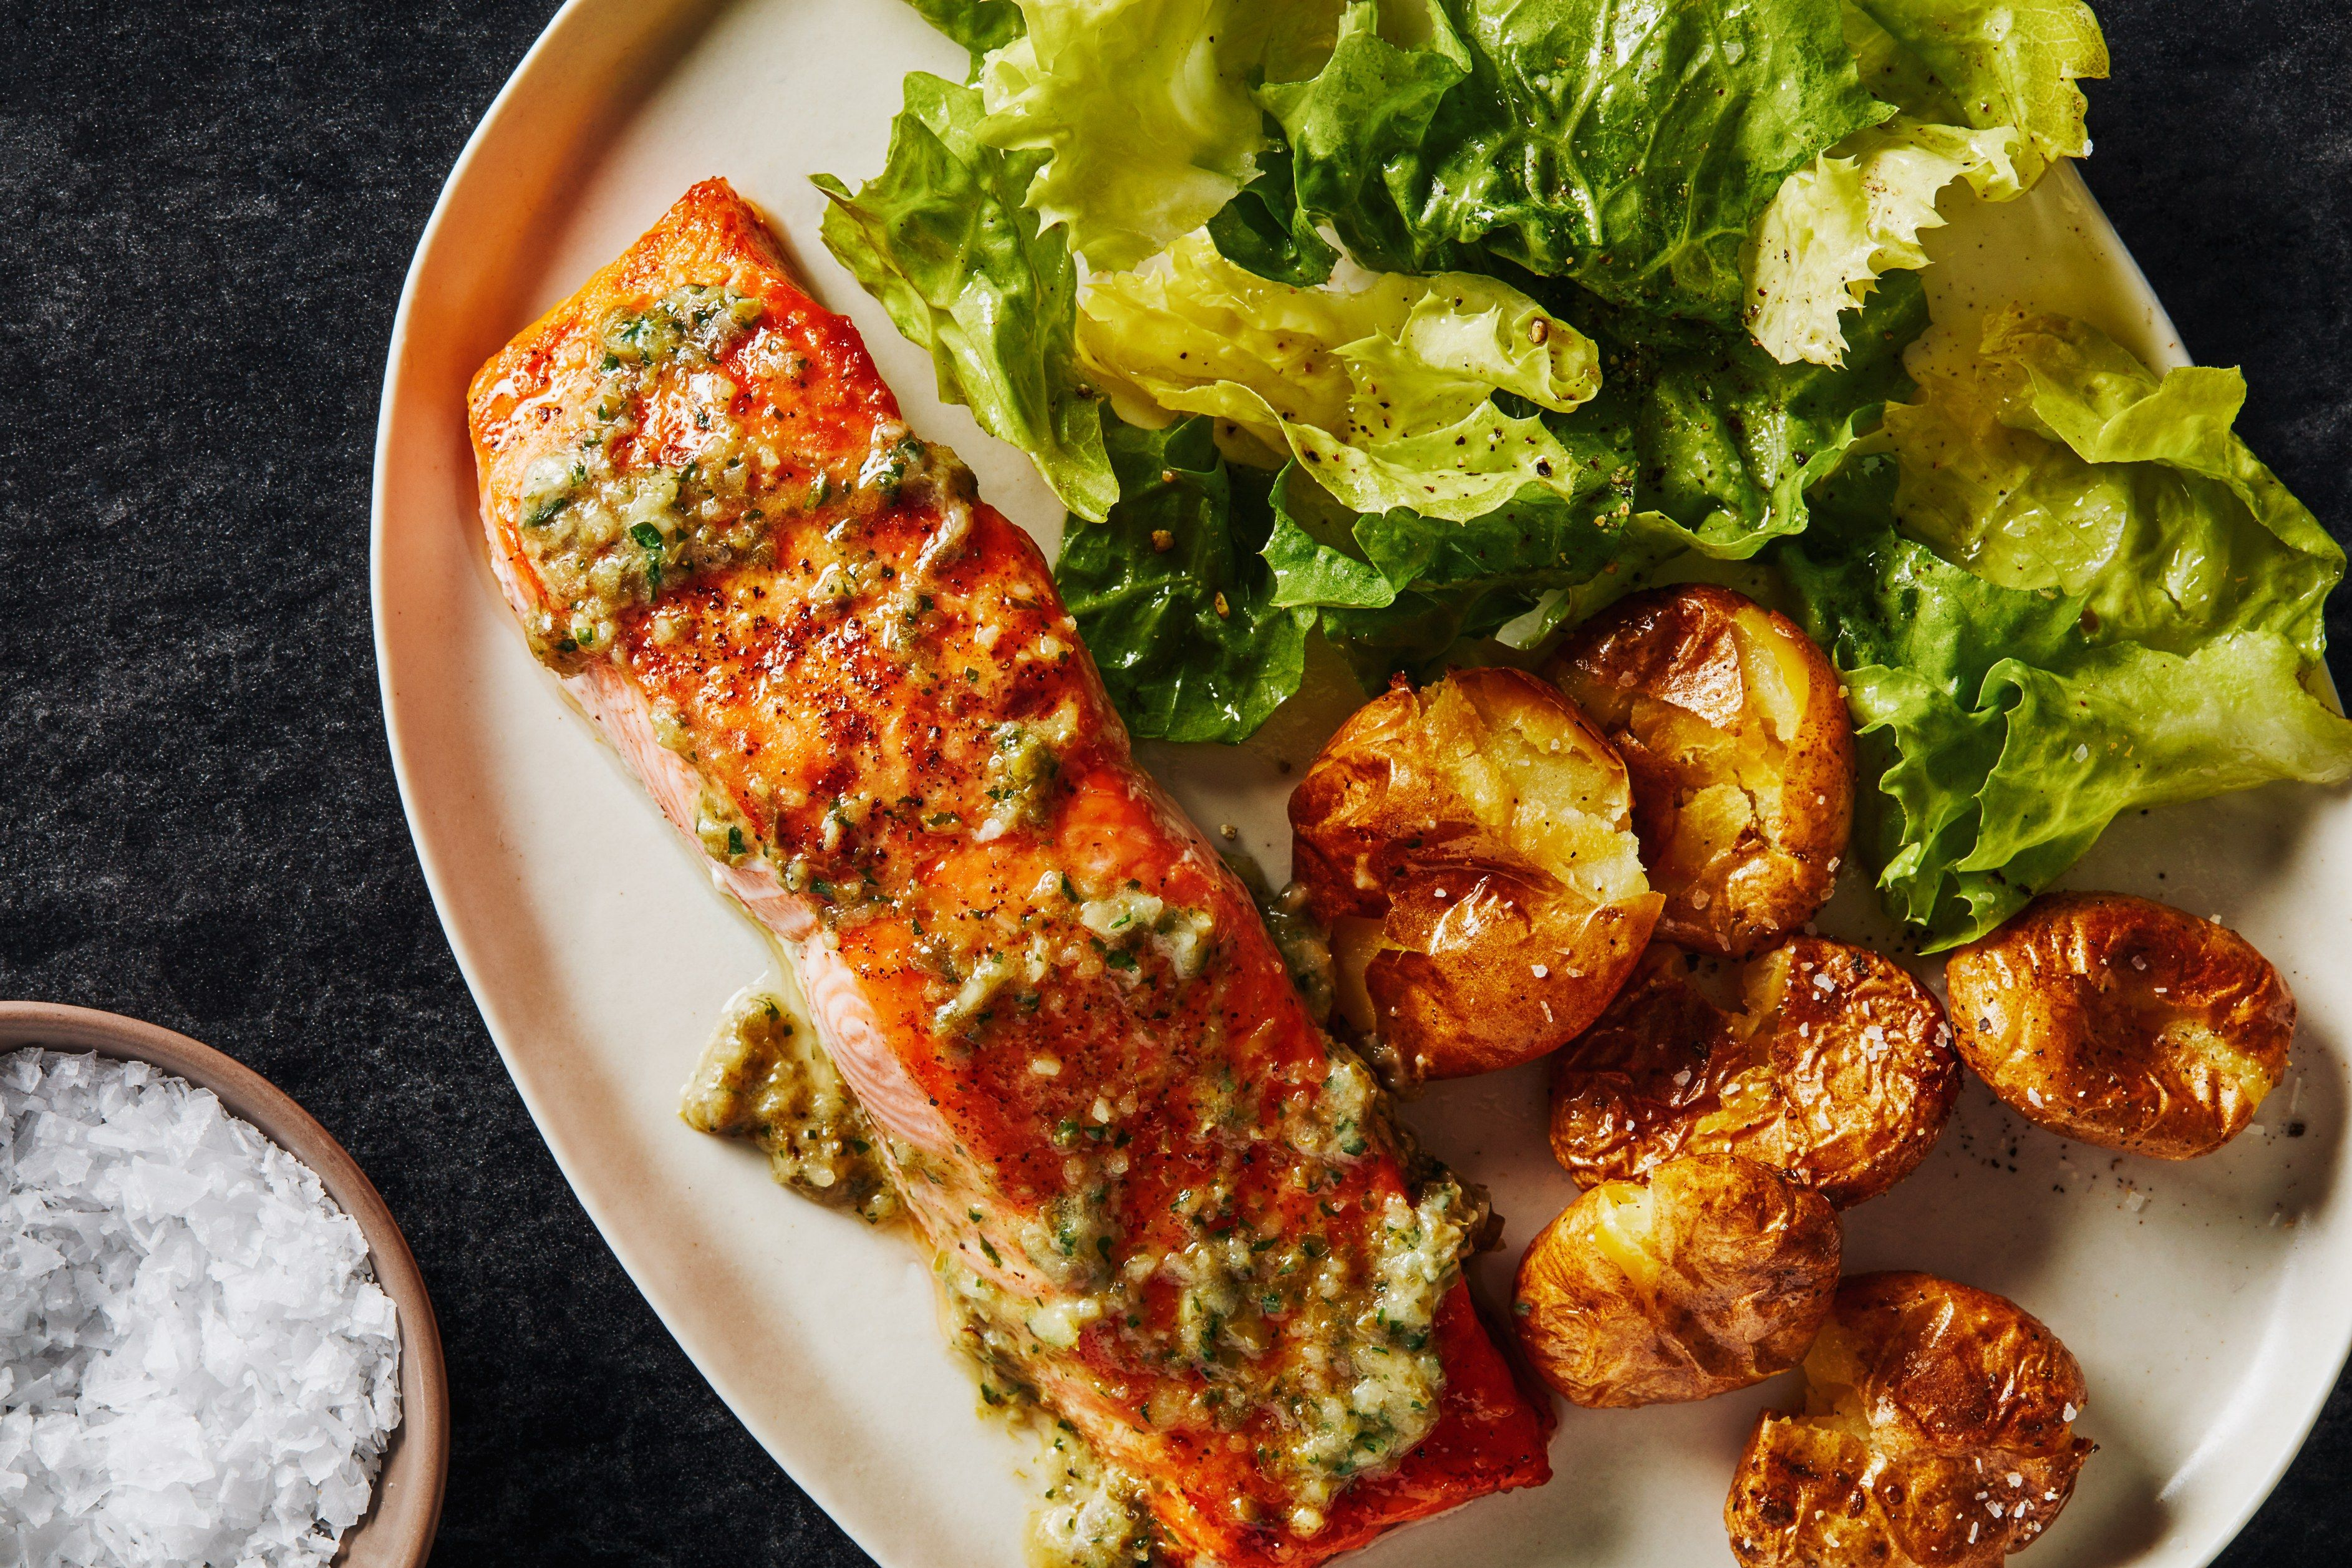 Butter flavored with garlic, anchovies, capers, lemon, and parsley makes quickly broiled salmon fillets extra enticing.